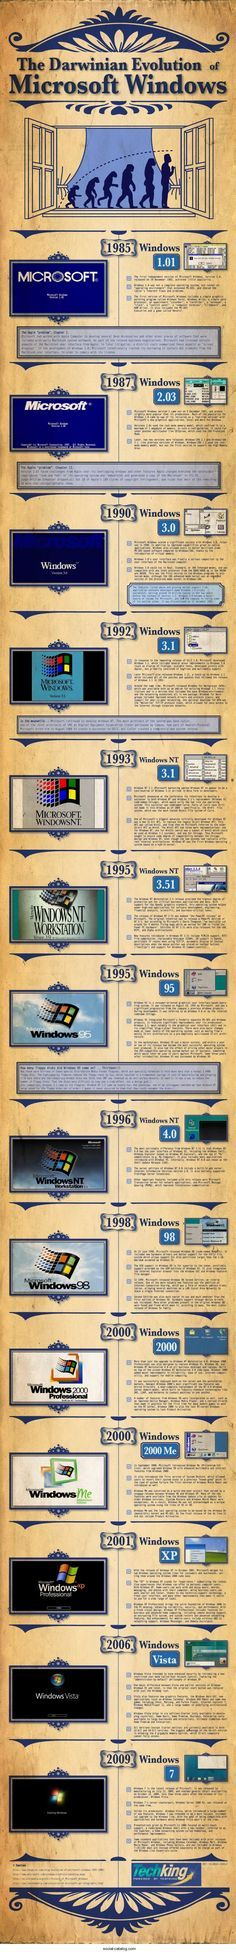 The Darwinian Evolution Of Microsoft Windows [INFOGRAPHIC]